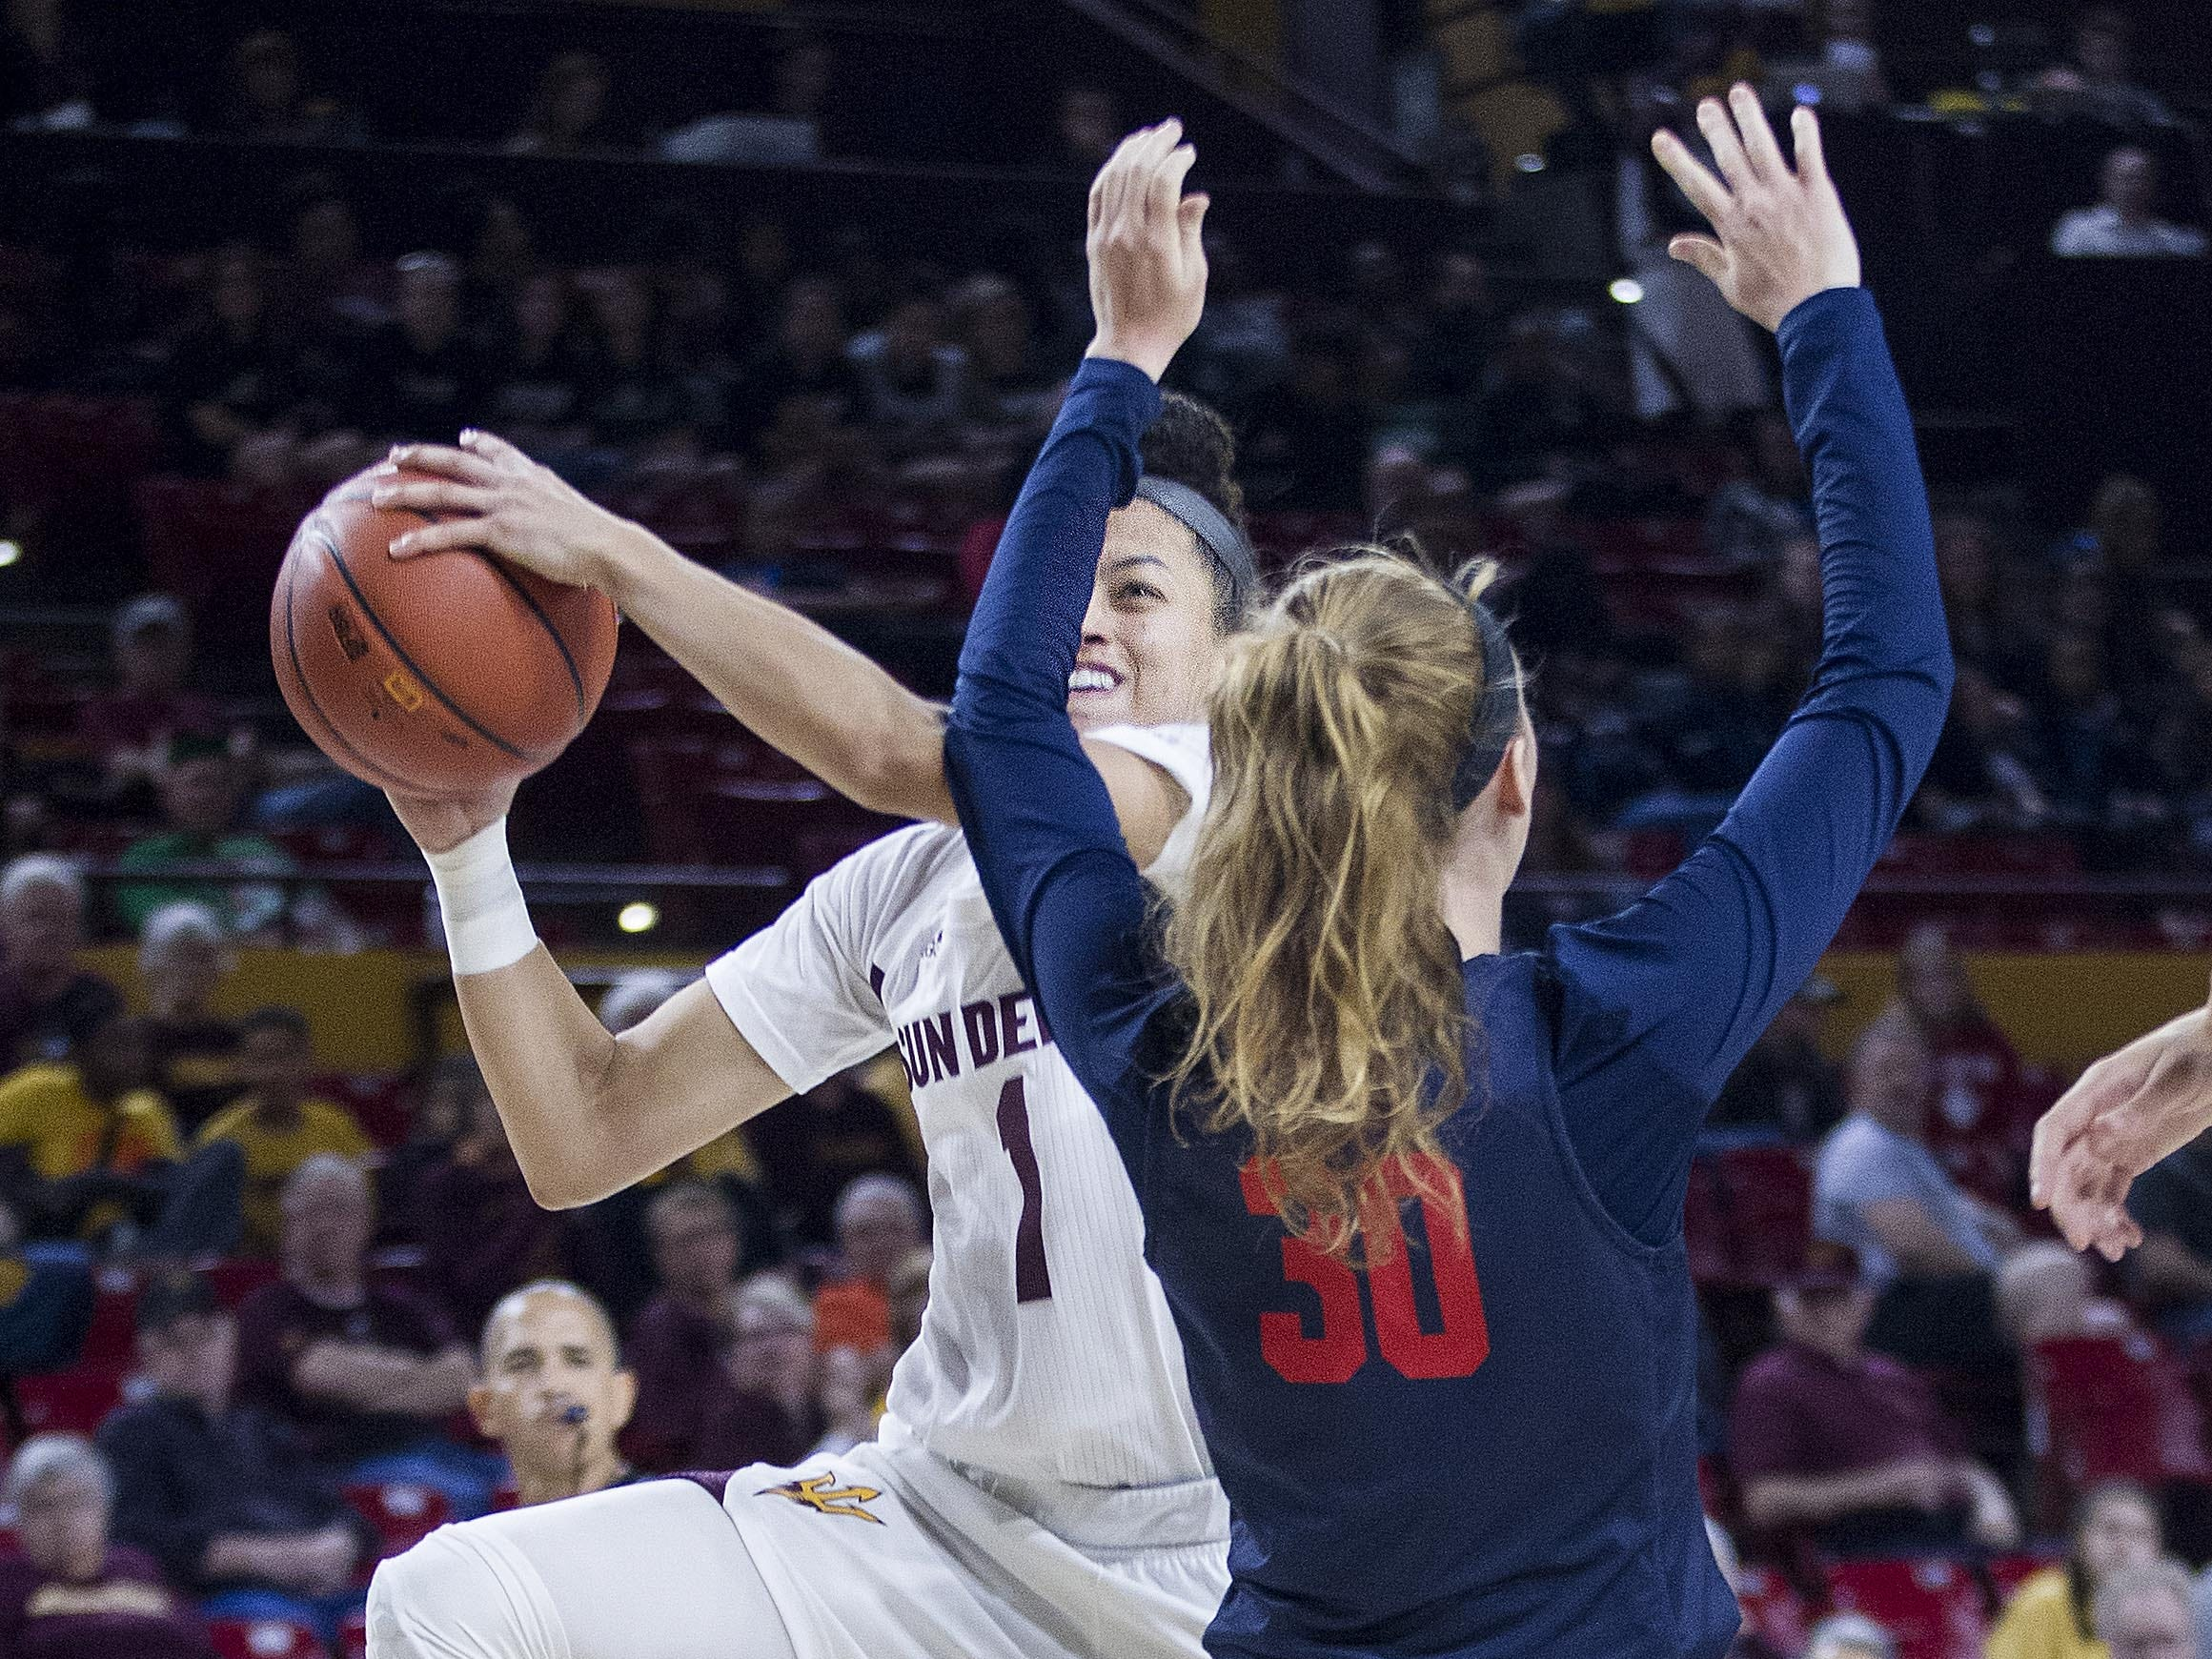 Arizona State's Reili Richardson (1) drives to the basket against Fresno State's Kristina Cavey (30) in the second half of their game in Tempe, Thursday, Dec. 20, 2018.